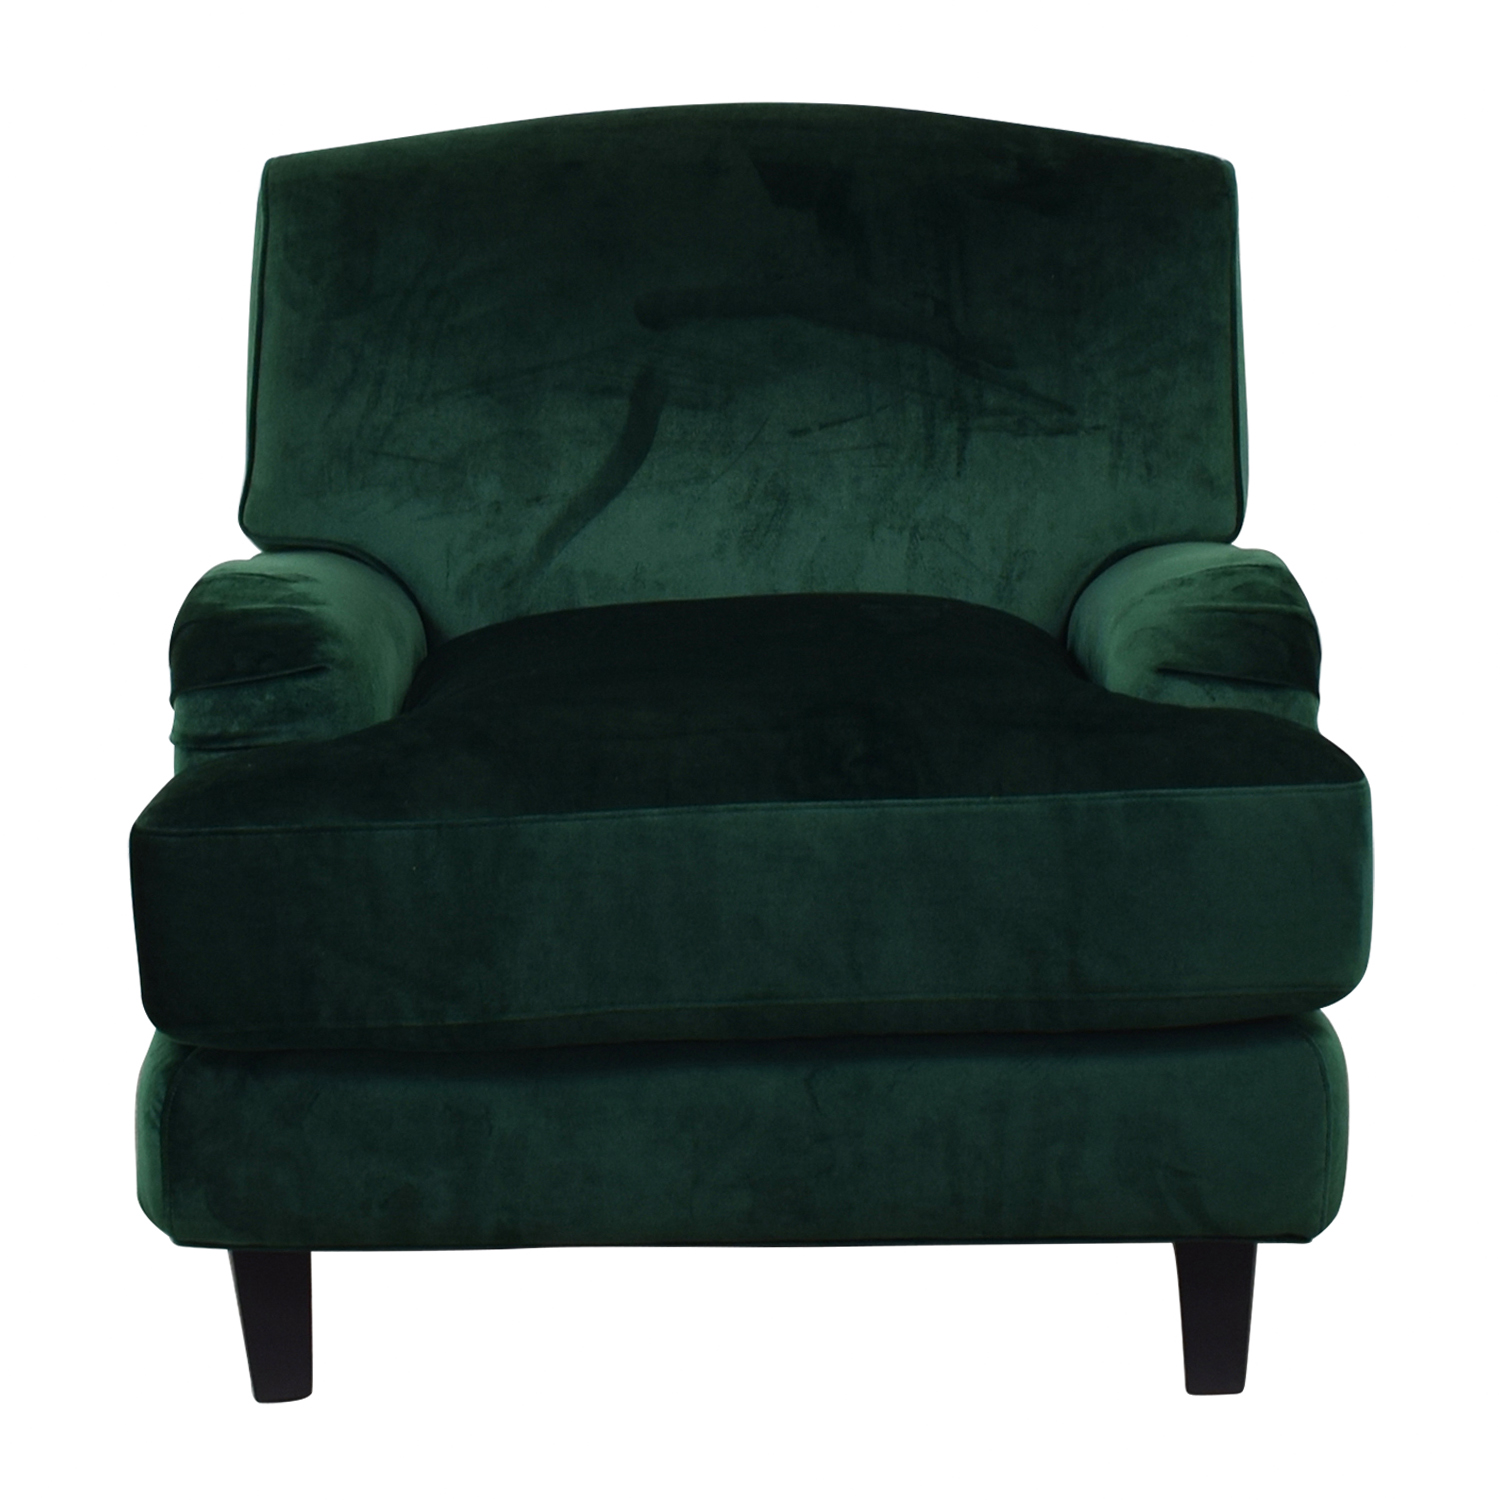 Emerald Green Accent Chair 81 Off Rose Emerald Green Chair Chairs